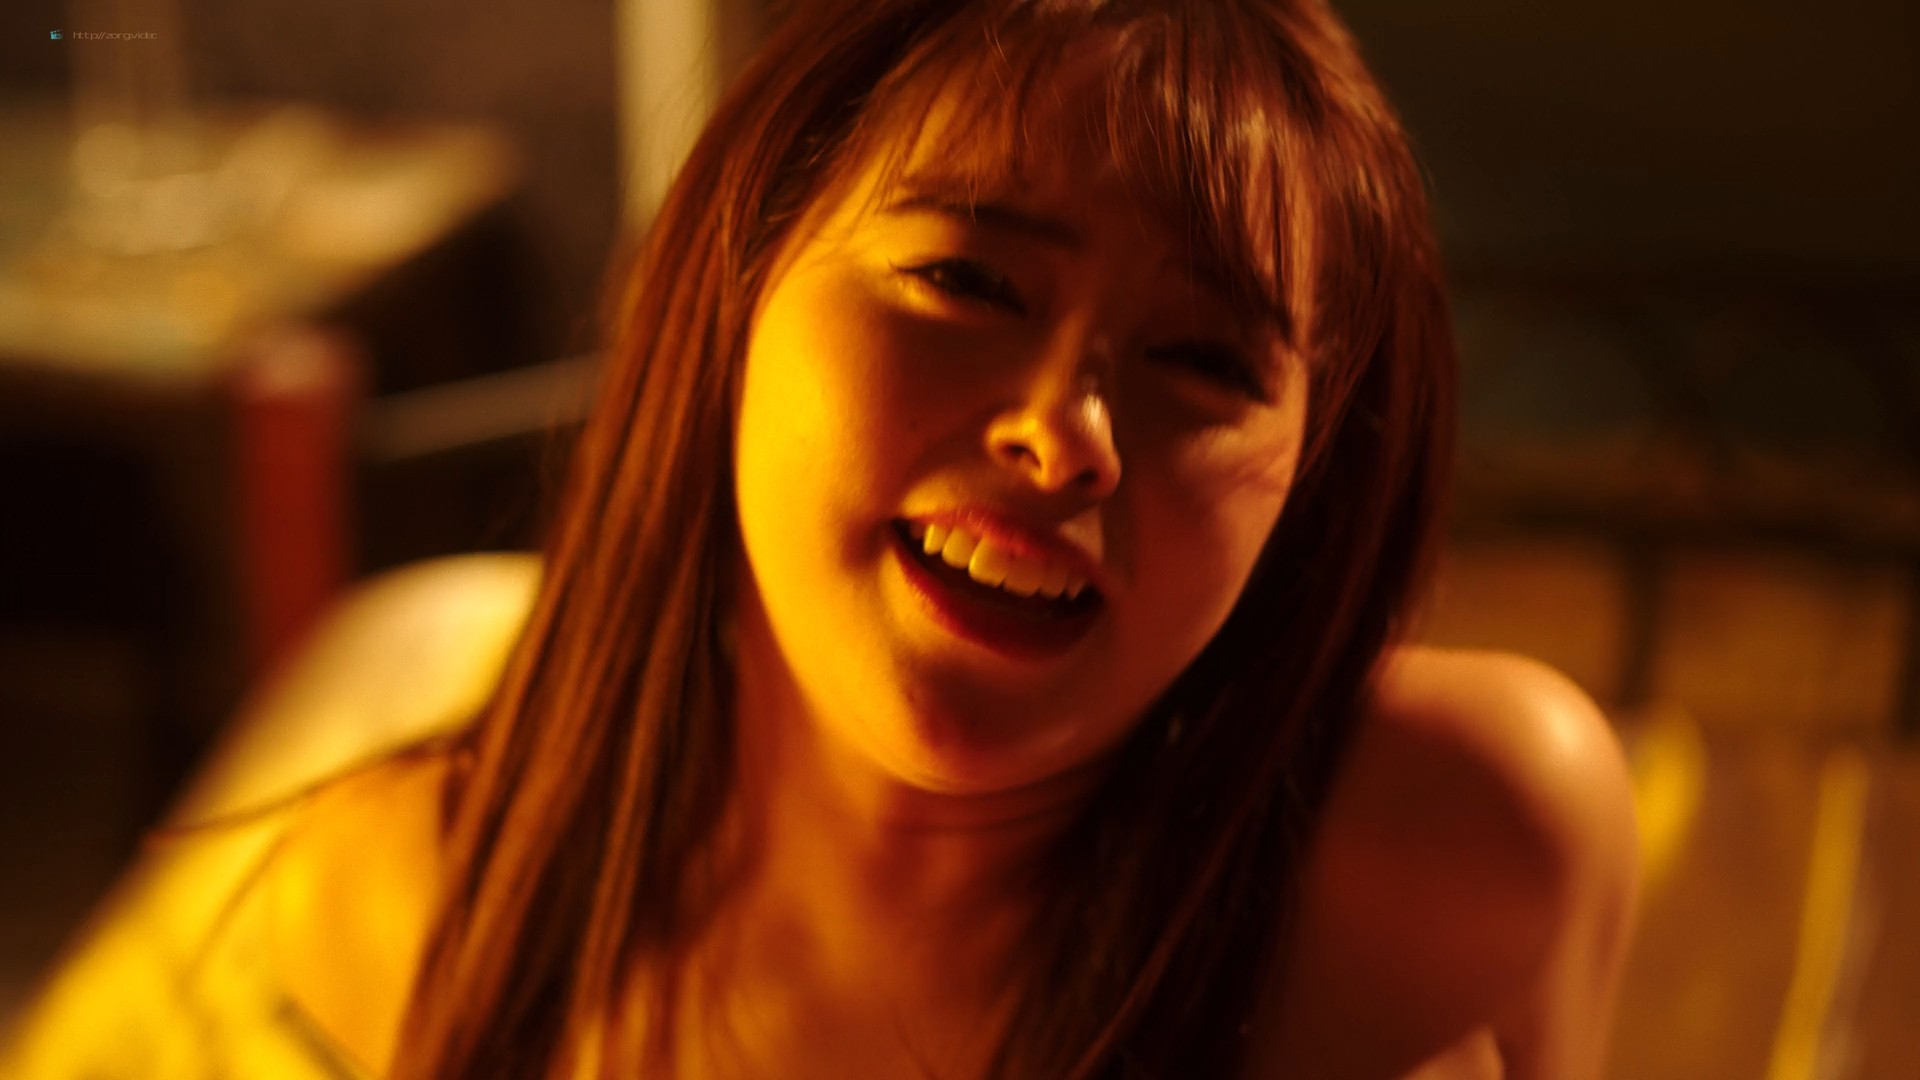 Ruri Shinato nude sex Umi Todo nude and hot sex - The Naked Director (2019) s1e1 HD 1080p Web (13)